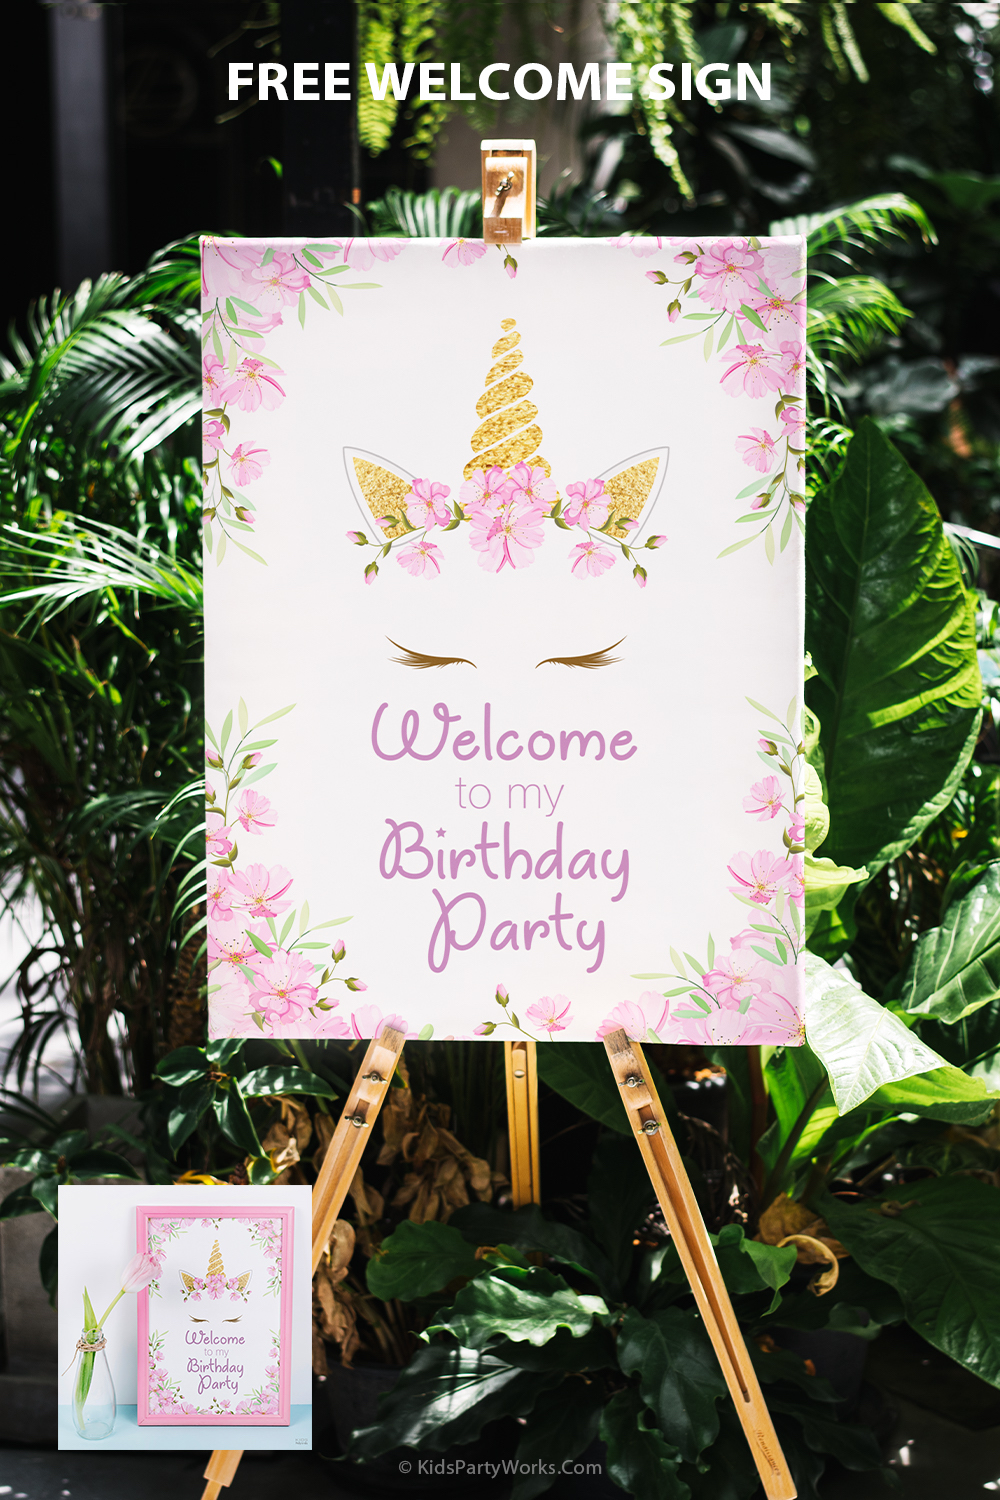 Free Unicorn Party Welcome Sign by KidsPartyWorks.Com